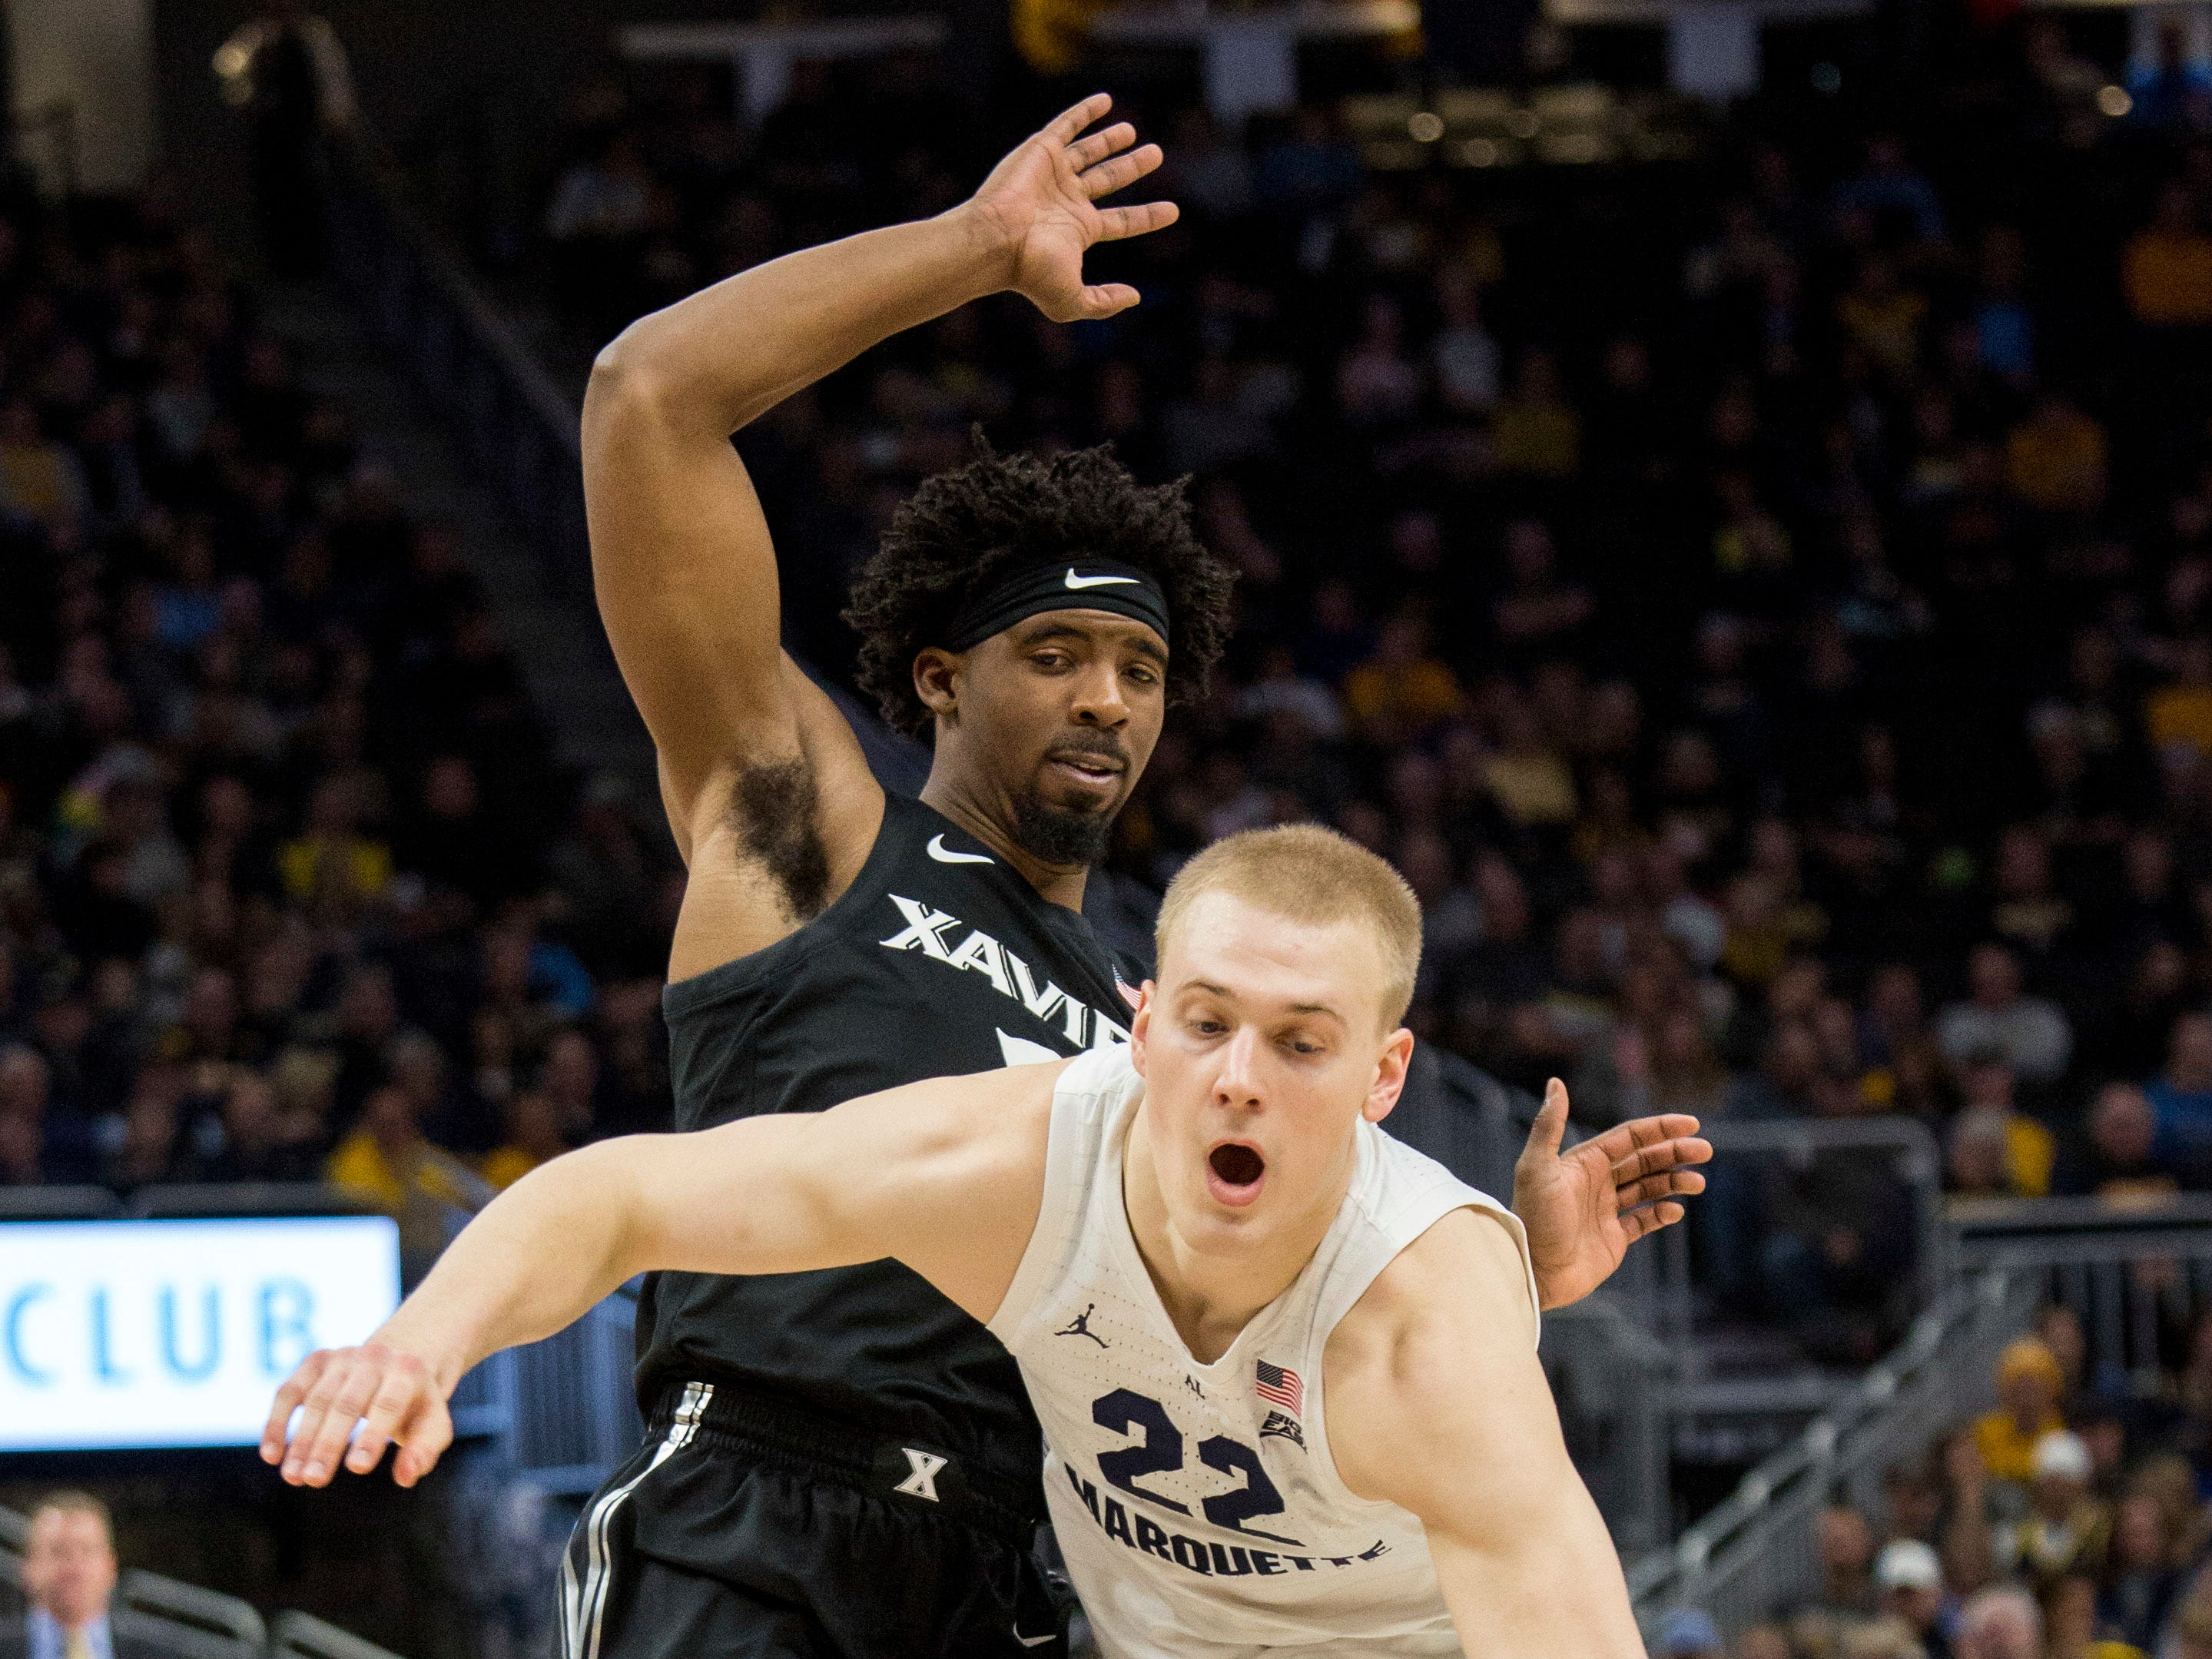 Marquette forward Joey Hauser drives past Quentin Goodin of Xavier during the first half Sunday afternoon at Fiserv Forum.